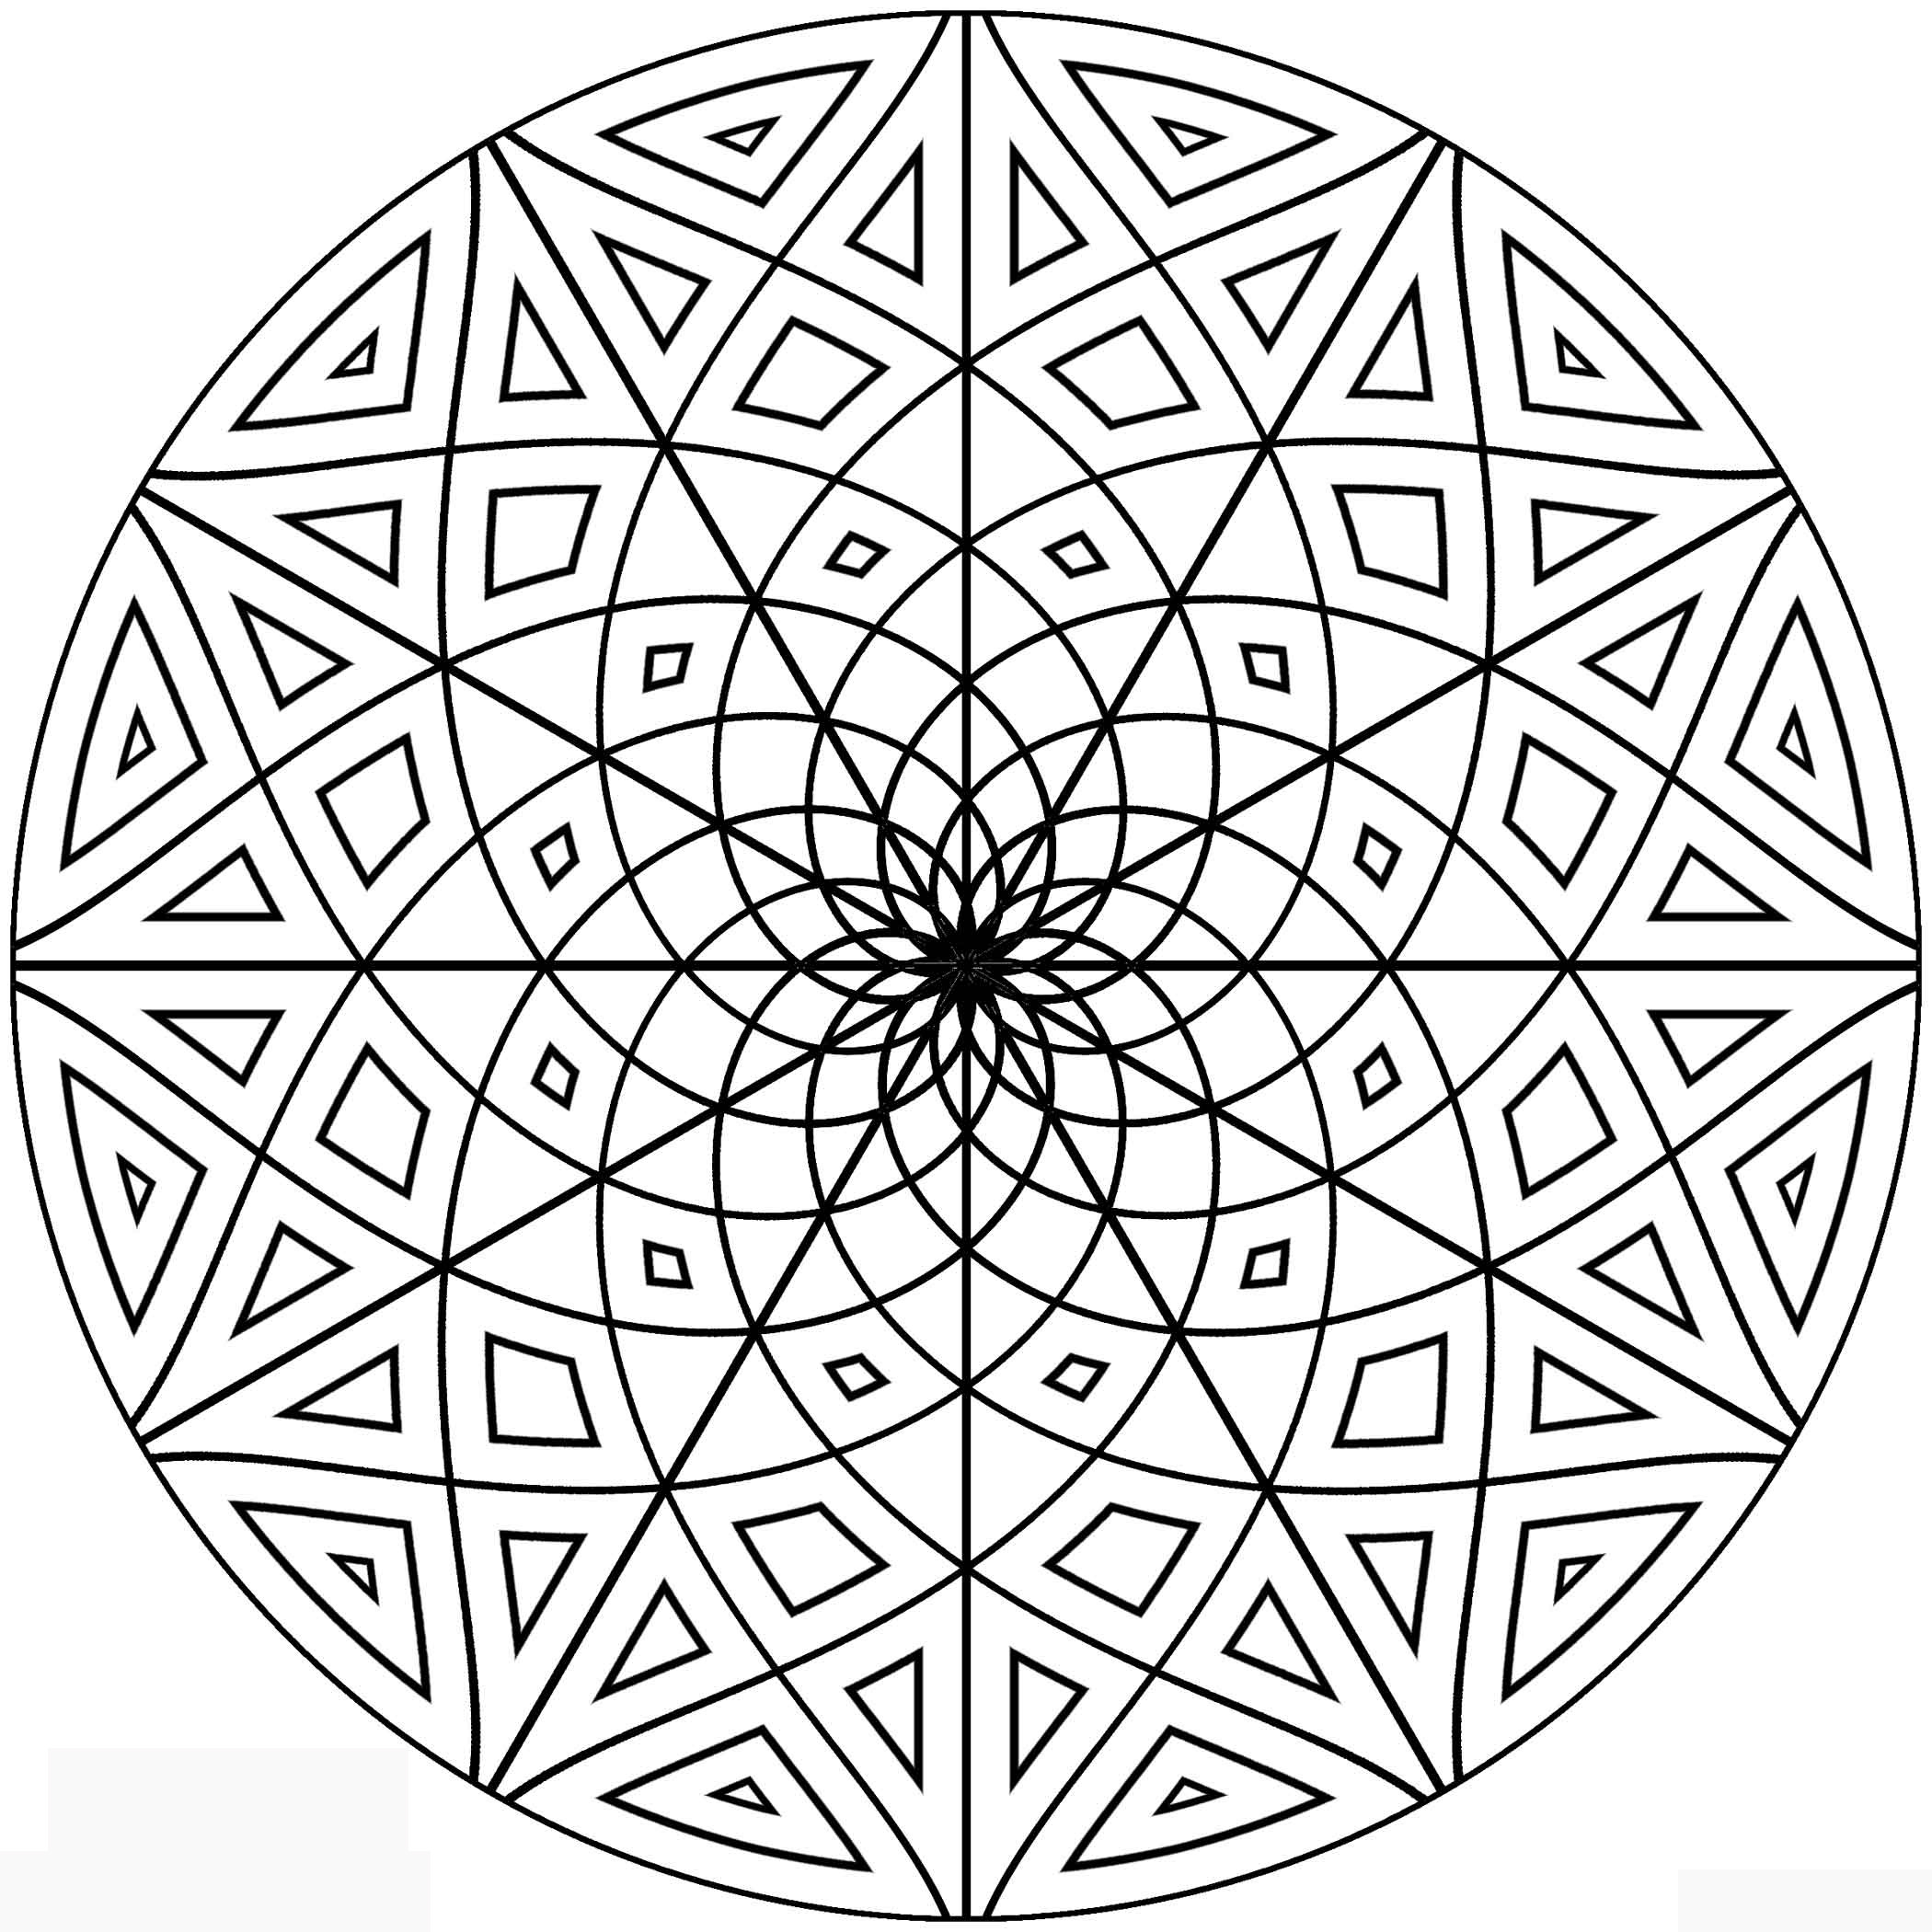 coloring pages for adults patterns 201 best abstract coloring pages images on pinterest for pages adults patterns coloring